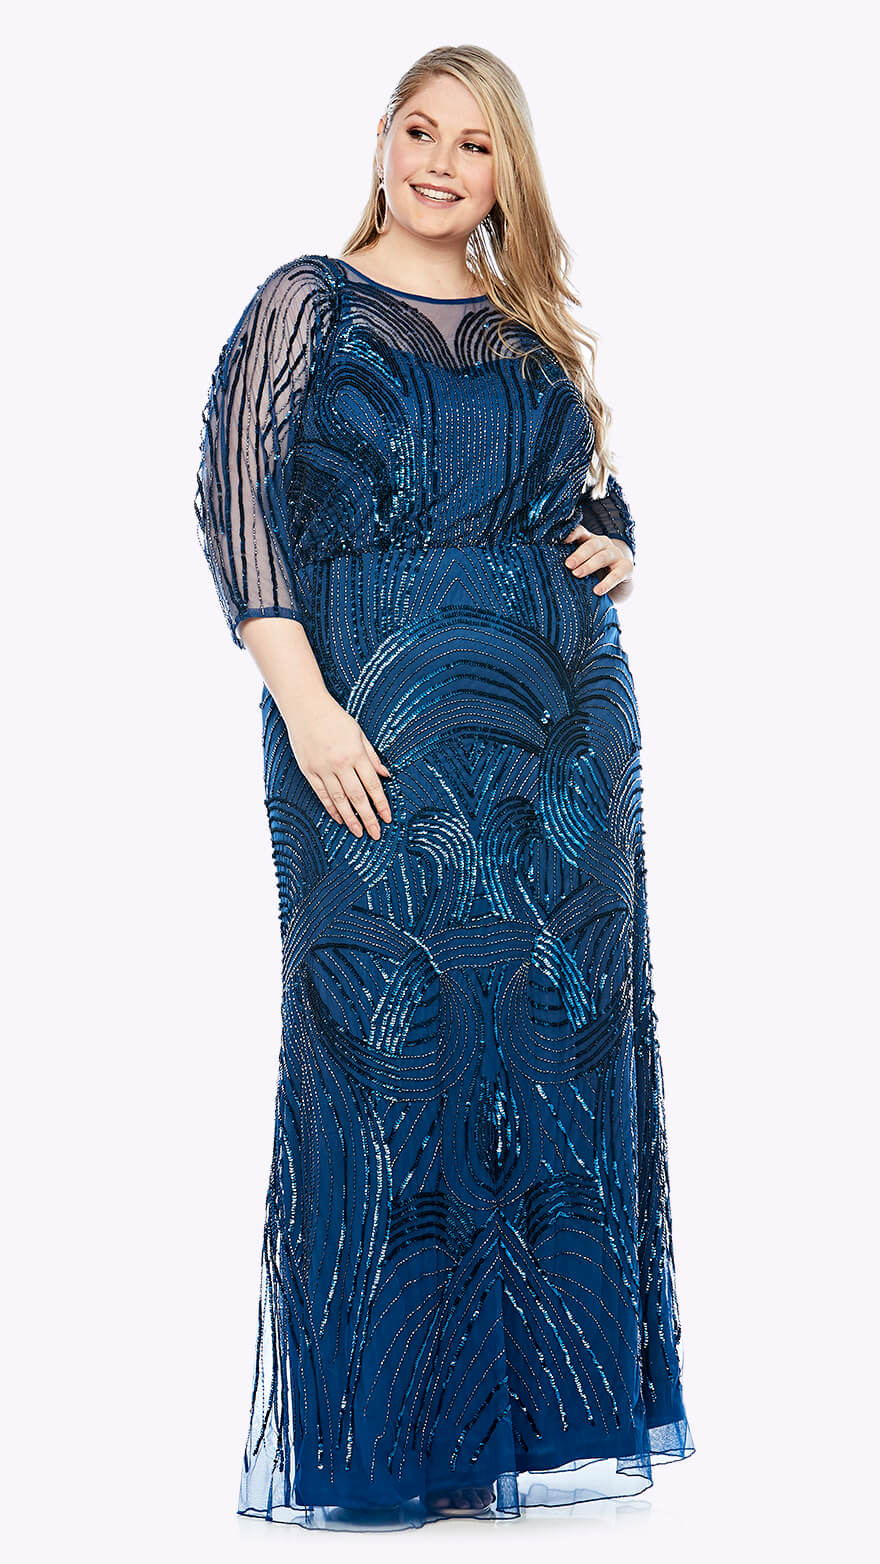 LJ0373 Blouson style gown with 3/4 length sleeve in graphic organic beaded pattern